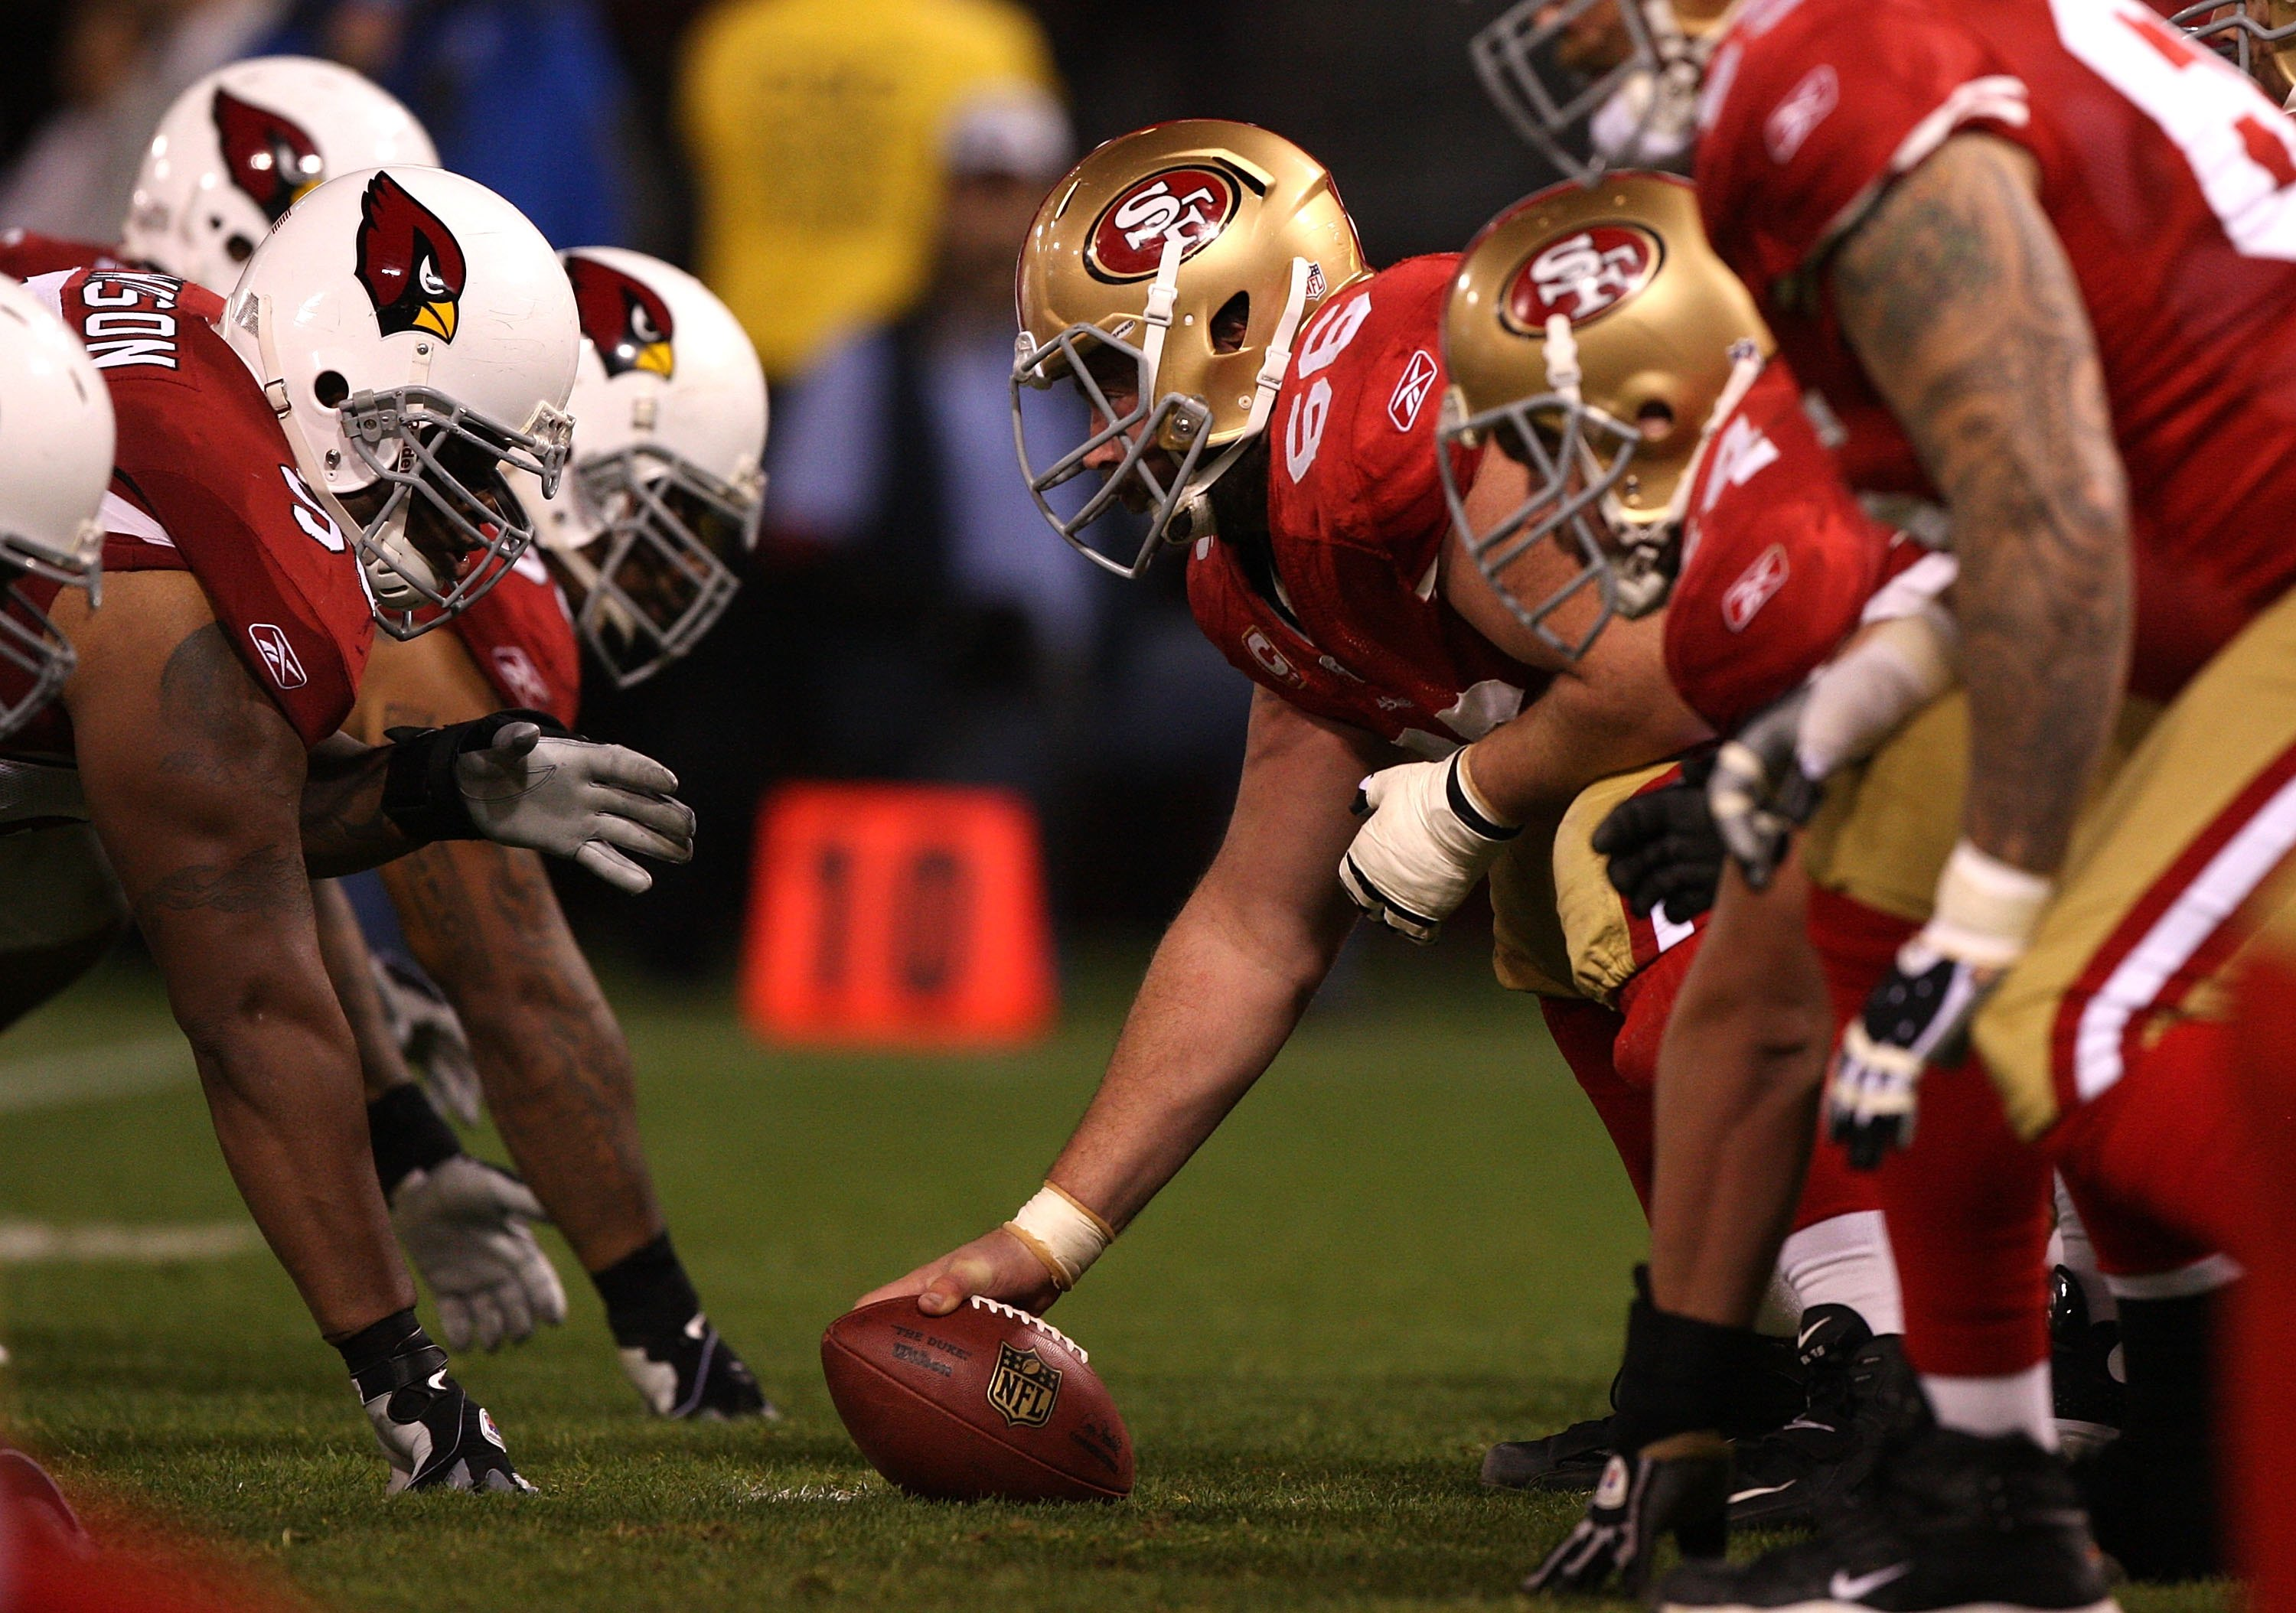 SAN FRANCISCO - DECEMBER 14:  Members of the San Francisco 49ers in action against the Arizona Cardinals at Candlestick Park on December 14, 2009 in San Francisco, California.  (Photo by Jed Jacobsohn/Getty Images)